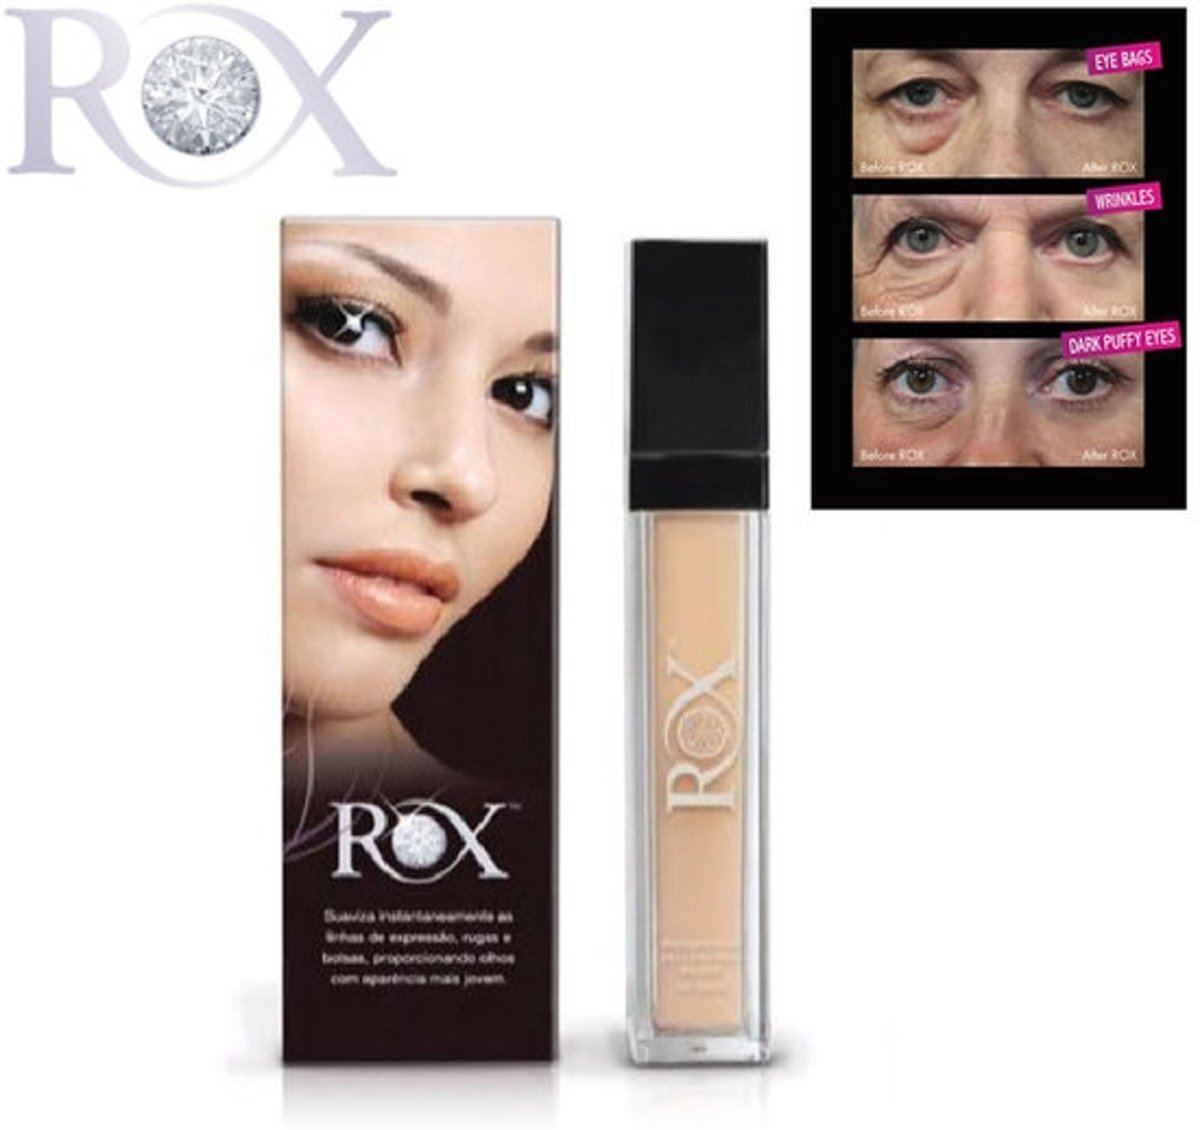 Rox Eyes Flawless Eyes - Anti rimpel creme - Oogcreme - Anti aging